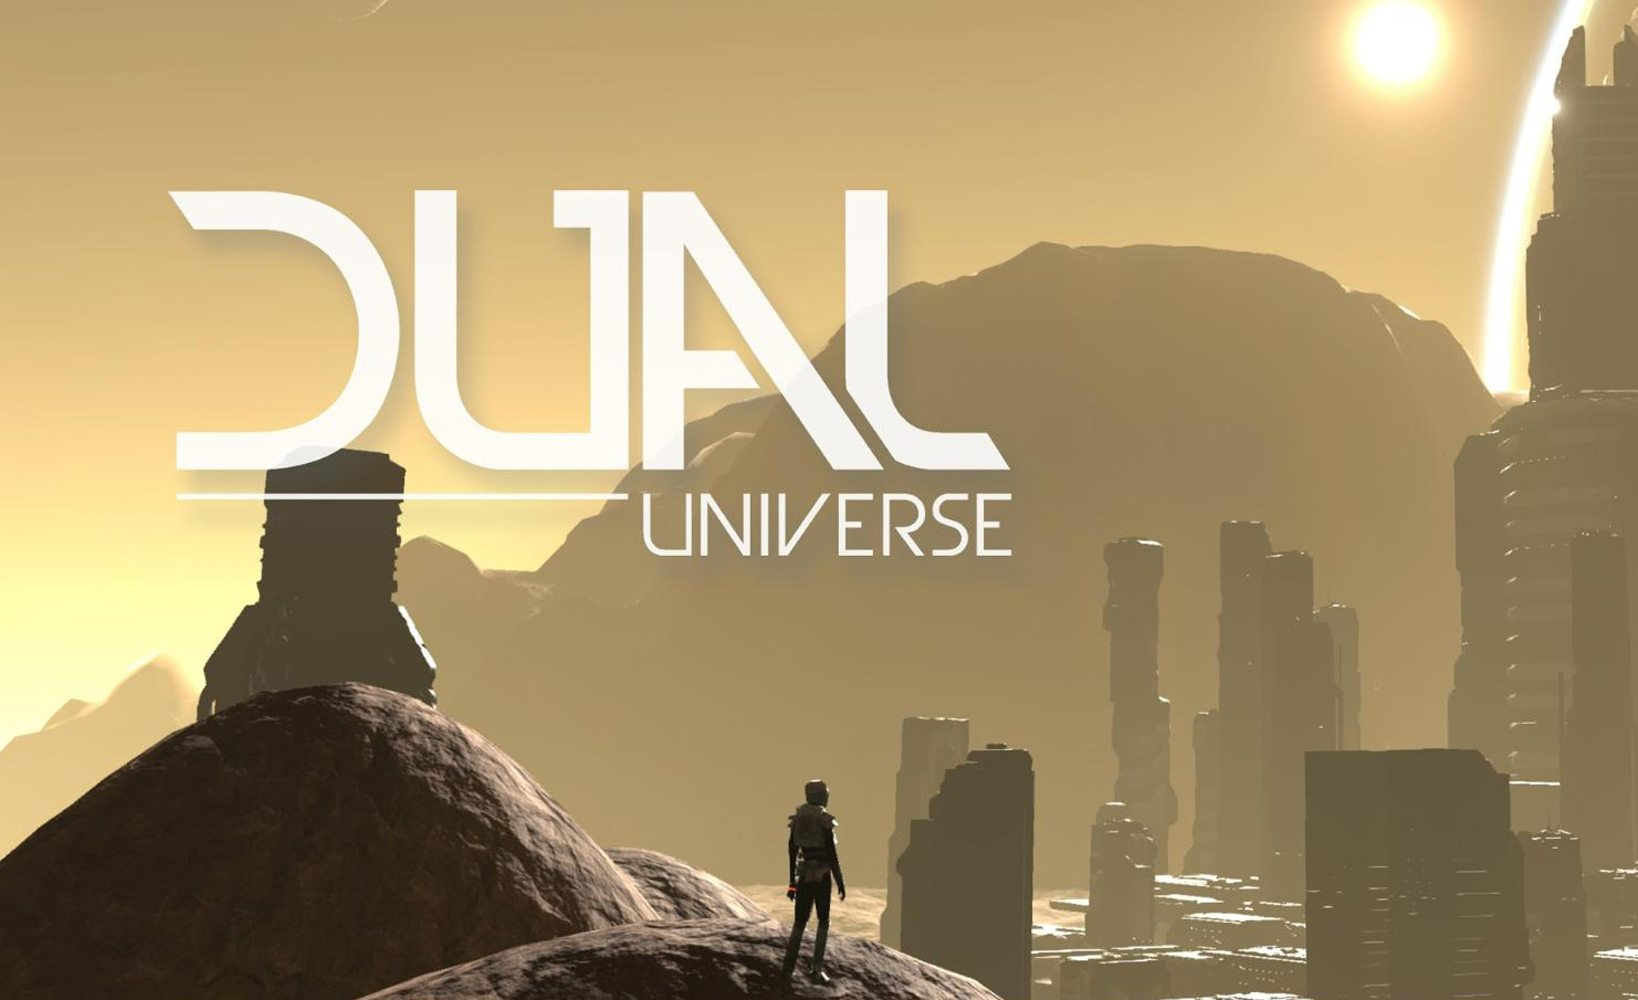 Dual Universe Gets Funded and Finishes as 3rd Most Funded Video Game Kickstarter Campaign in 2016